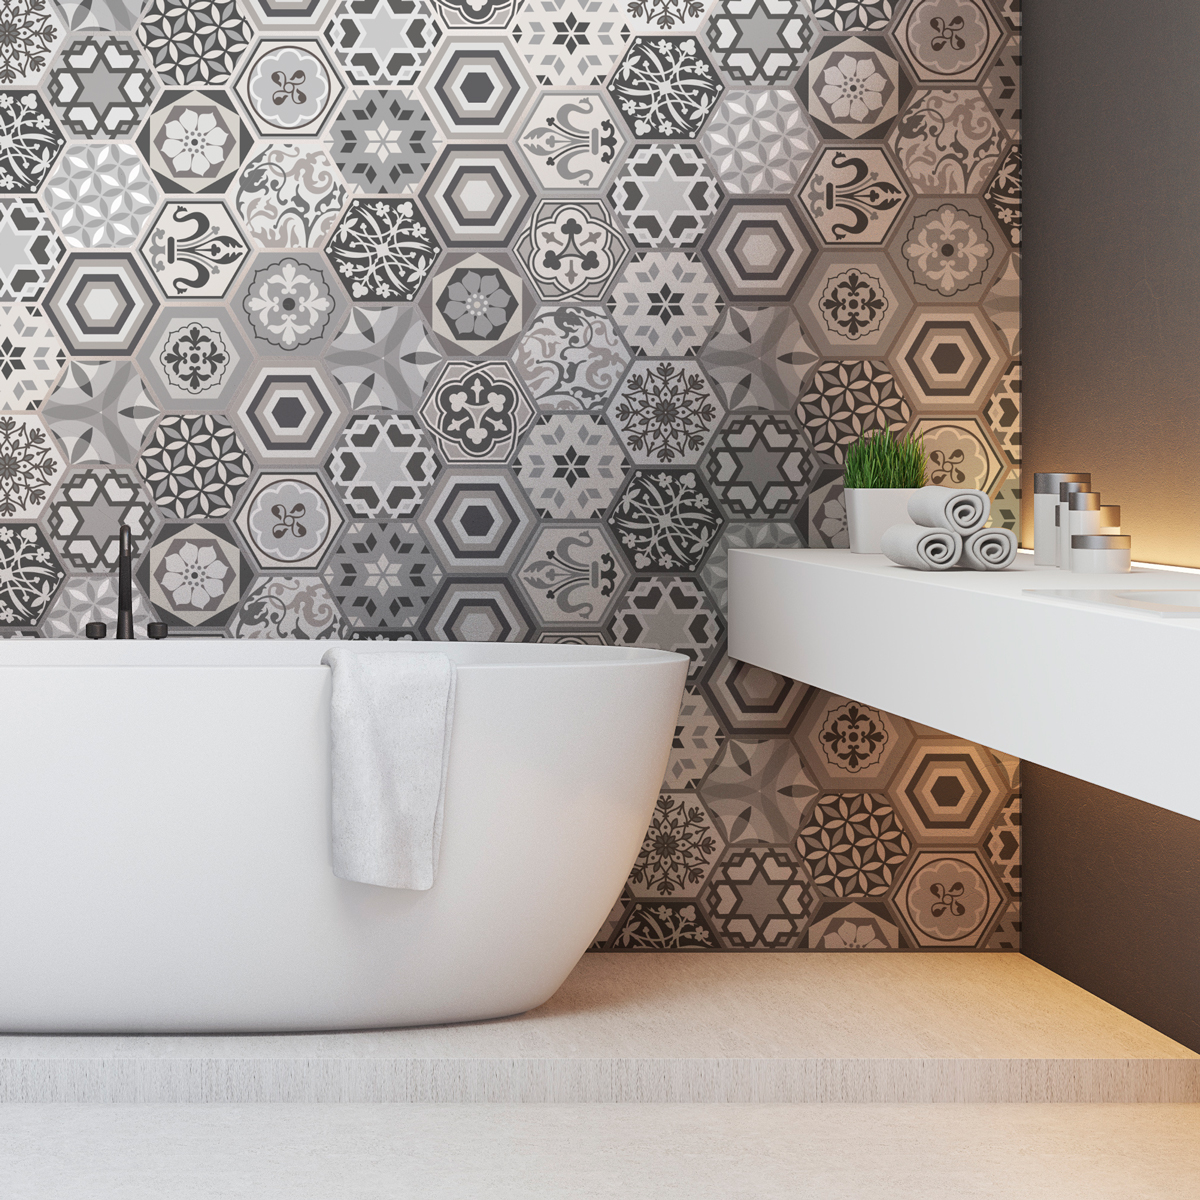 stickers carrelages hexagones nuances de gris mosa que salle de bain et wc salle de bain. Black Bedroom Furniture Sets. Home Design Ideas